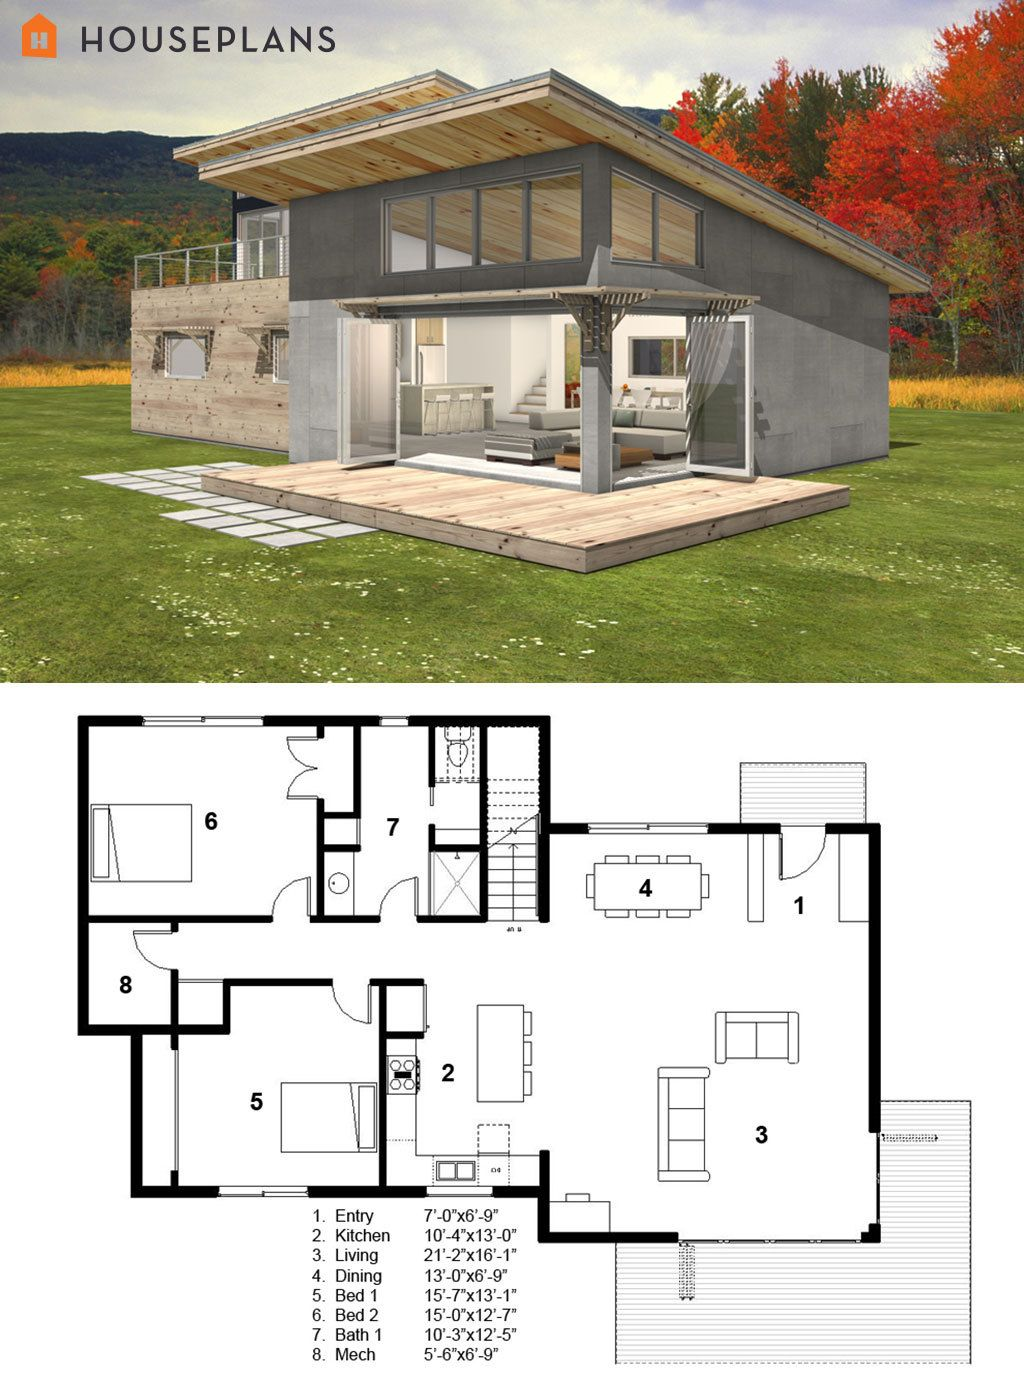 Small modern cabin house plan by freegreen energy for Small river house plans